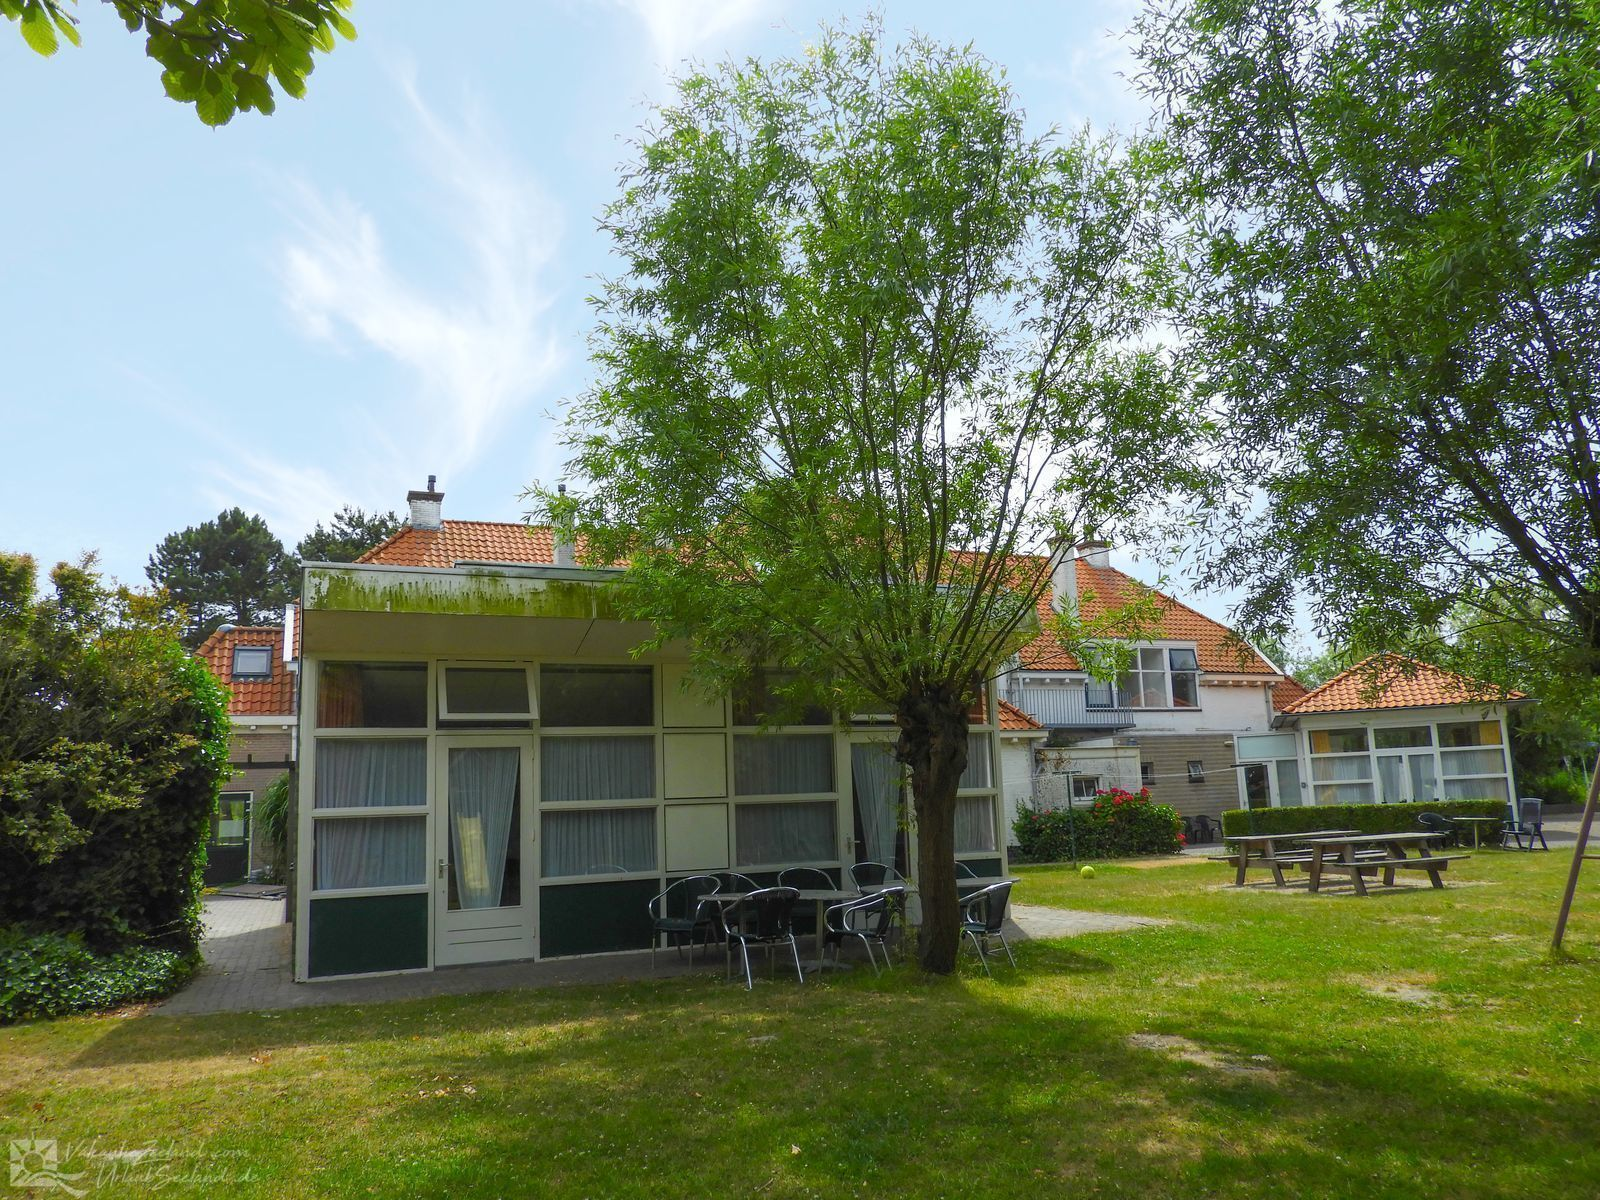 VZ132 Group accommodation Westkapelle